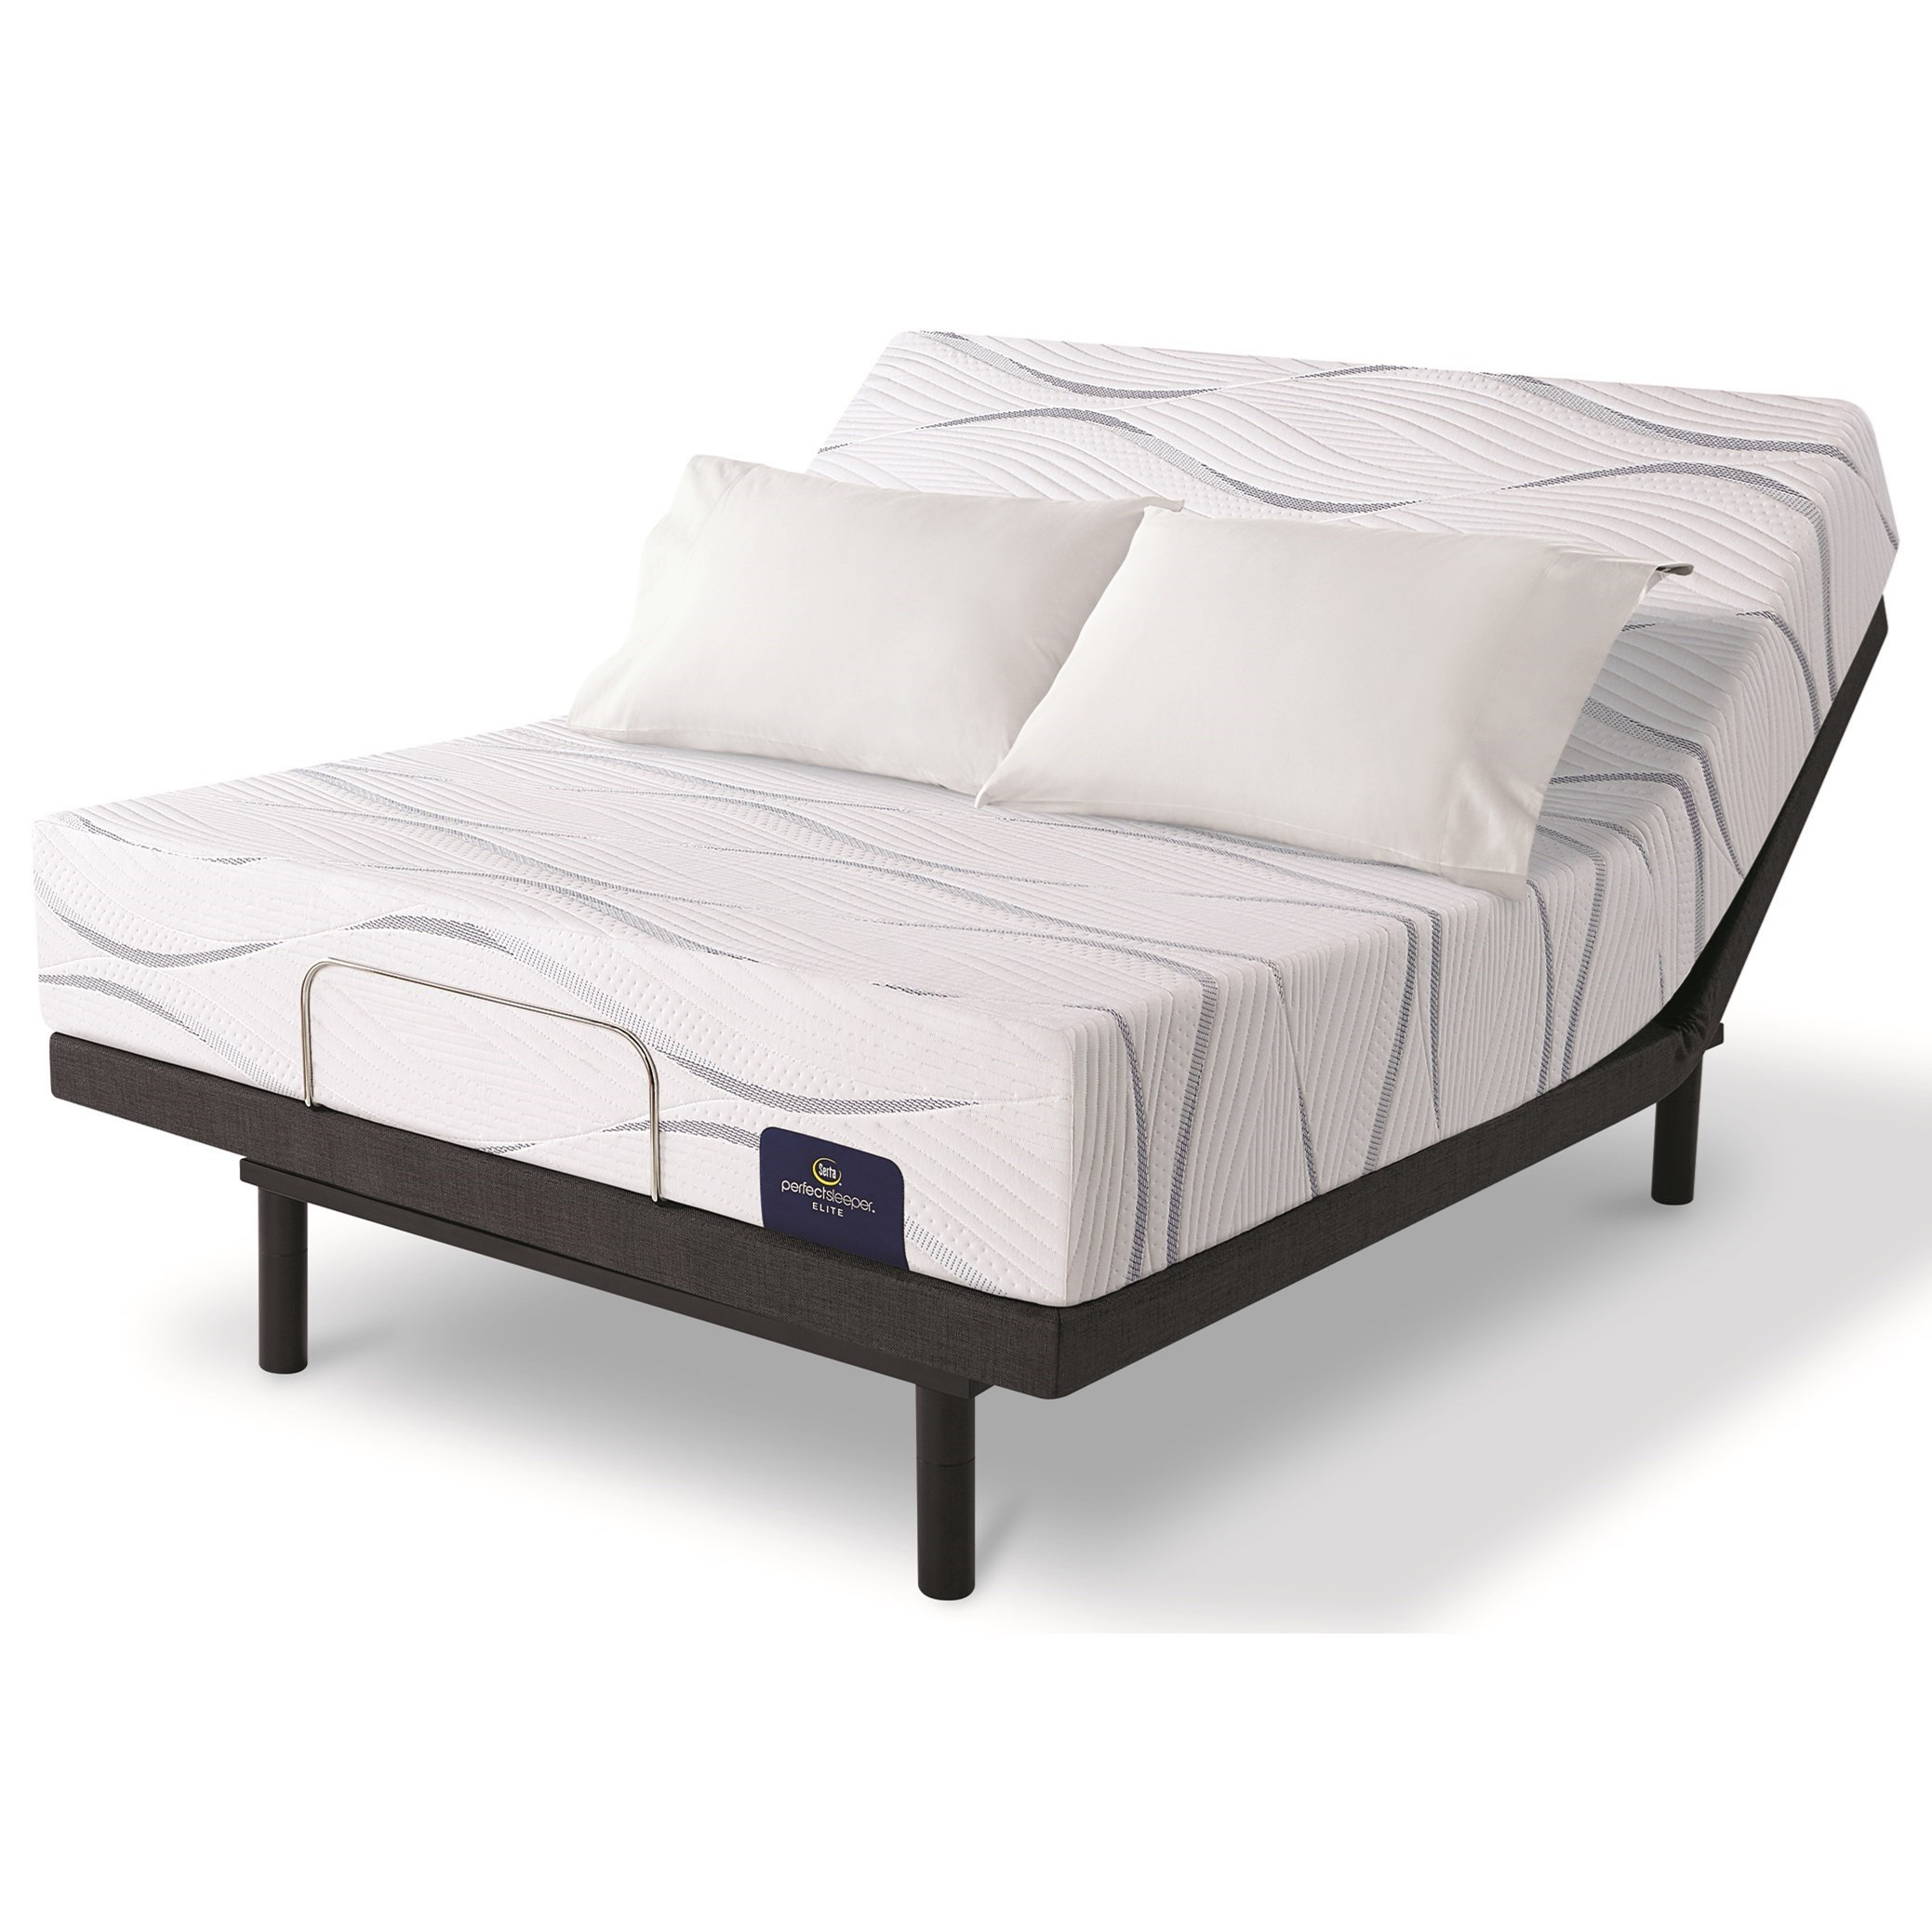 Merriam II Firm Cal King Gel Memory Foam Adj Mattress Set by Serta at SlumberWorld